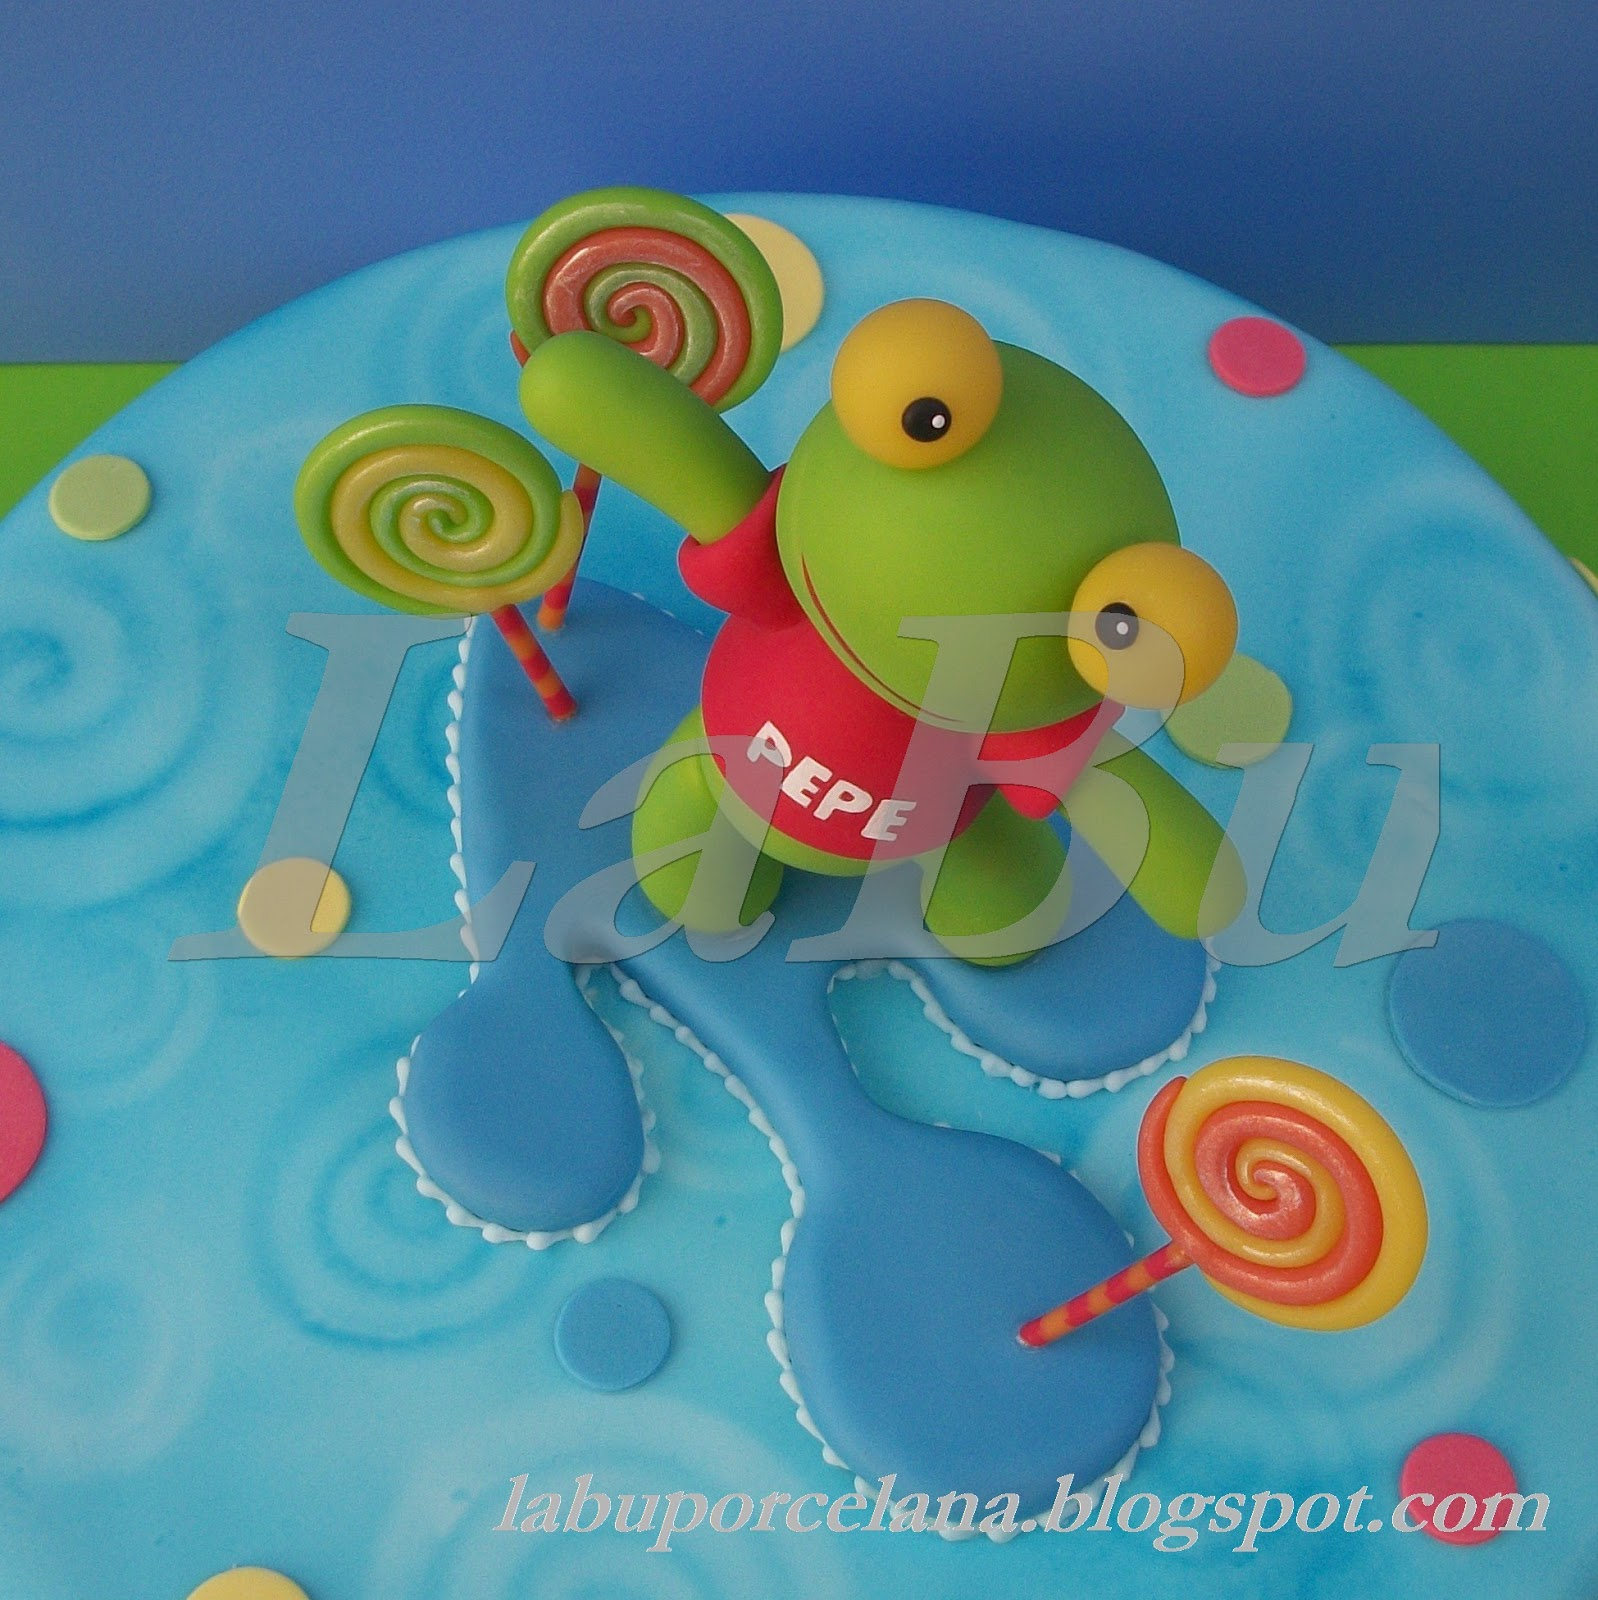 sapo pepe 5 - photo #47